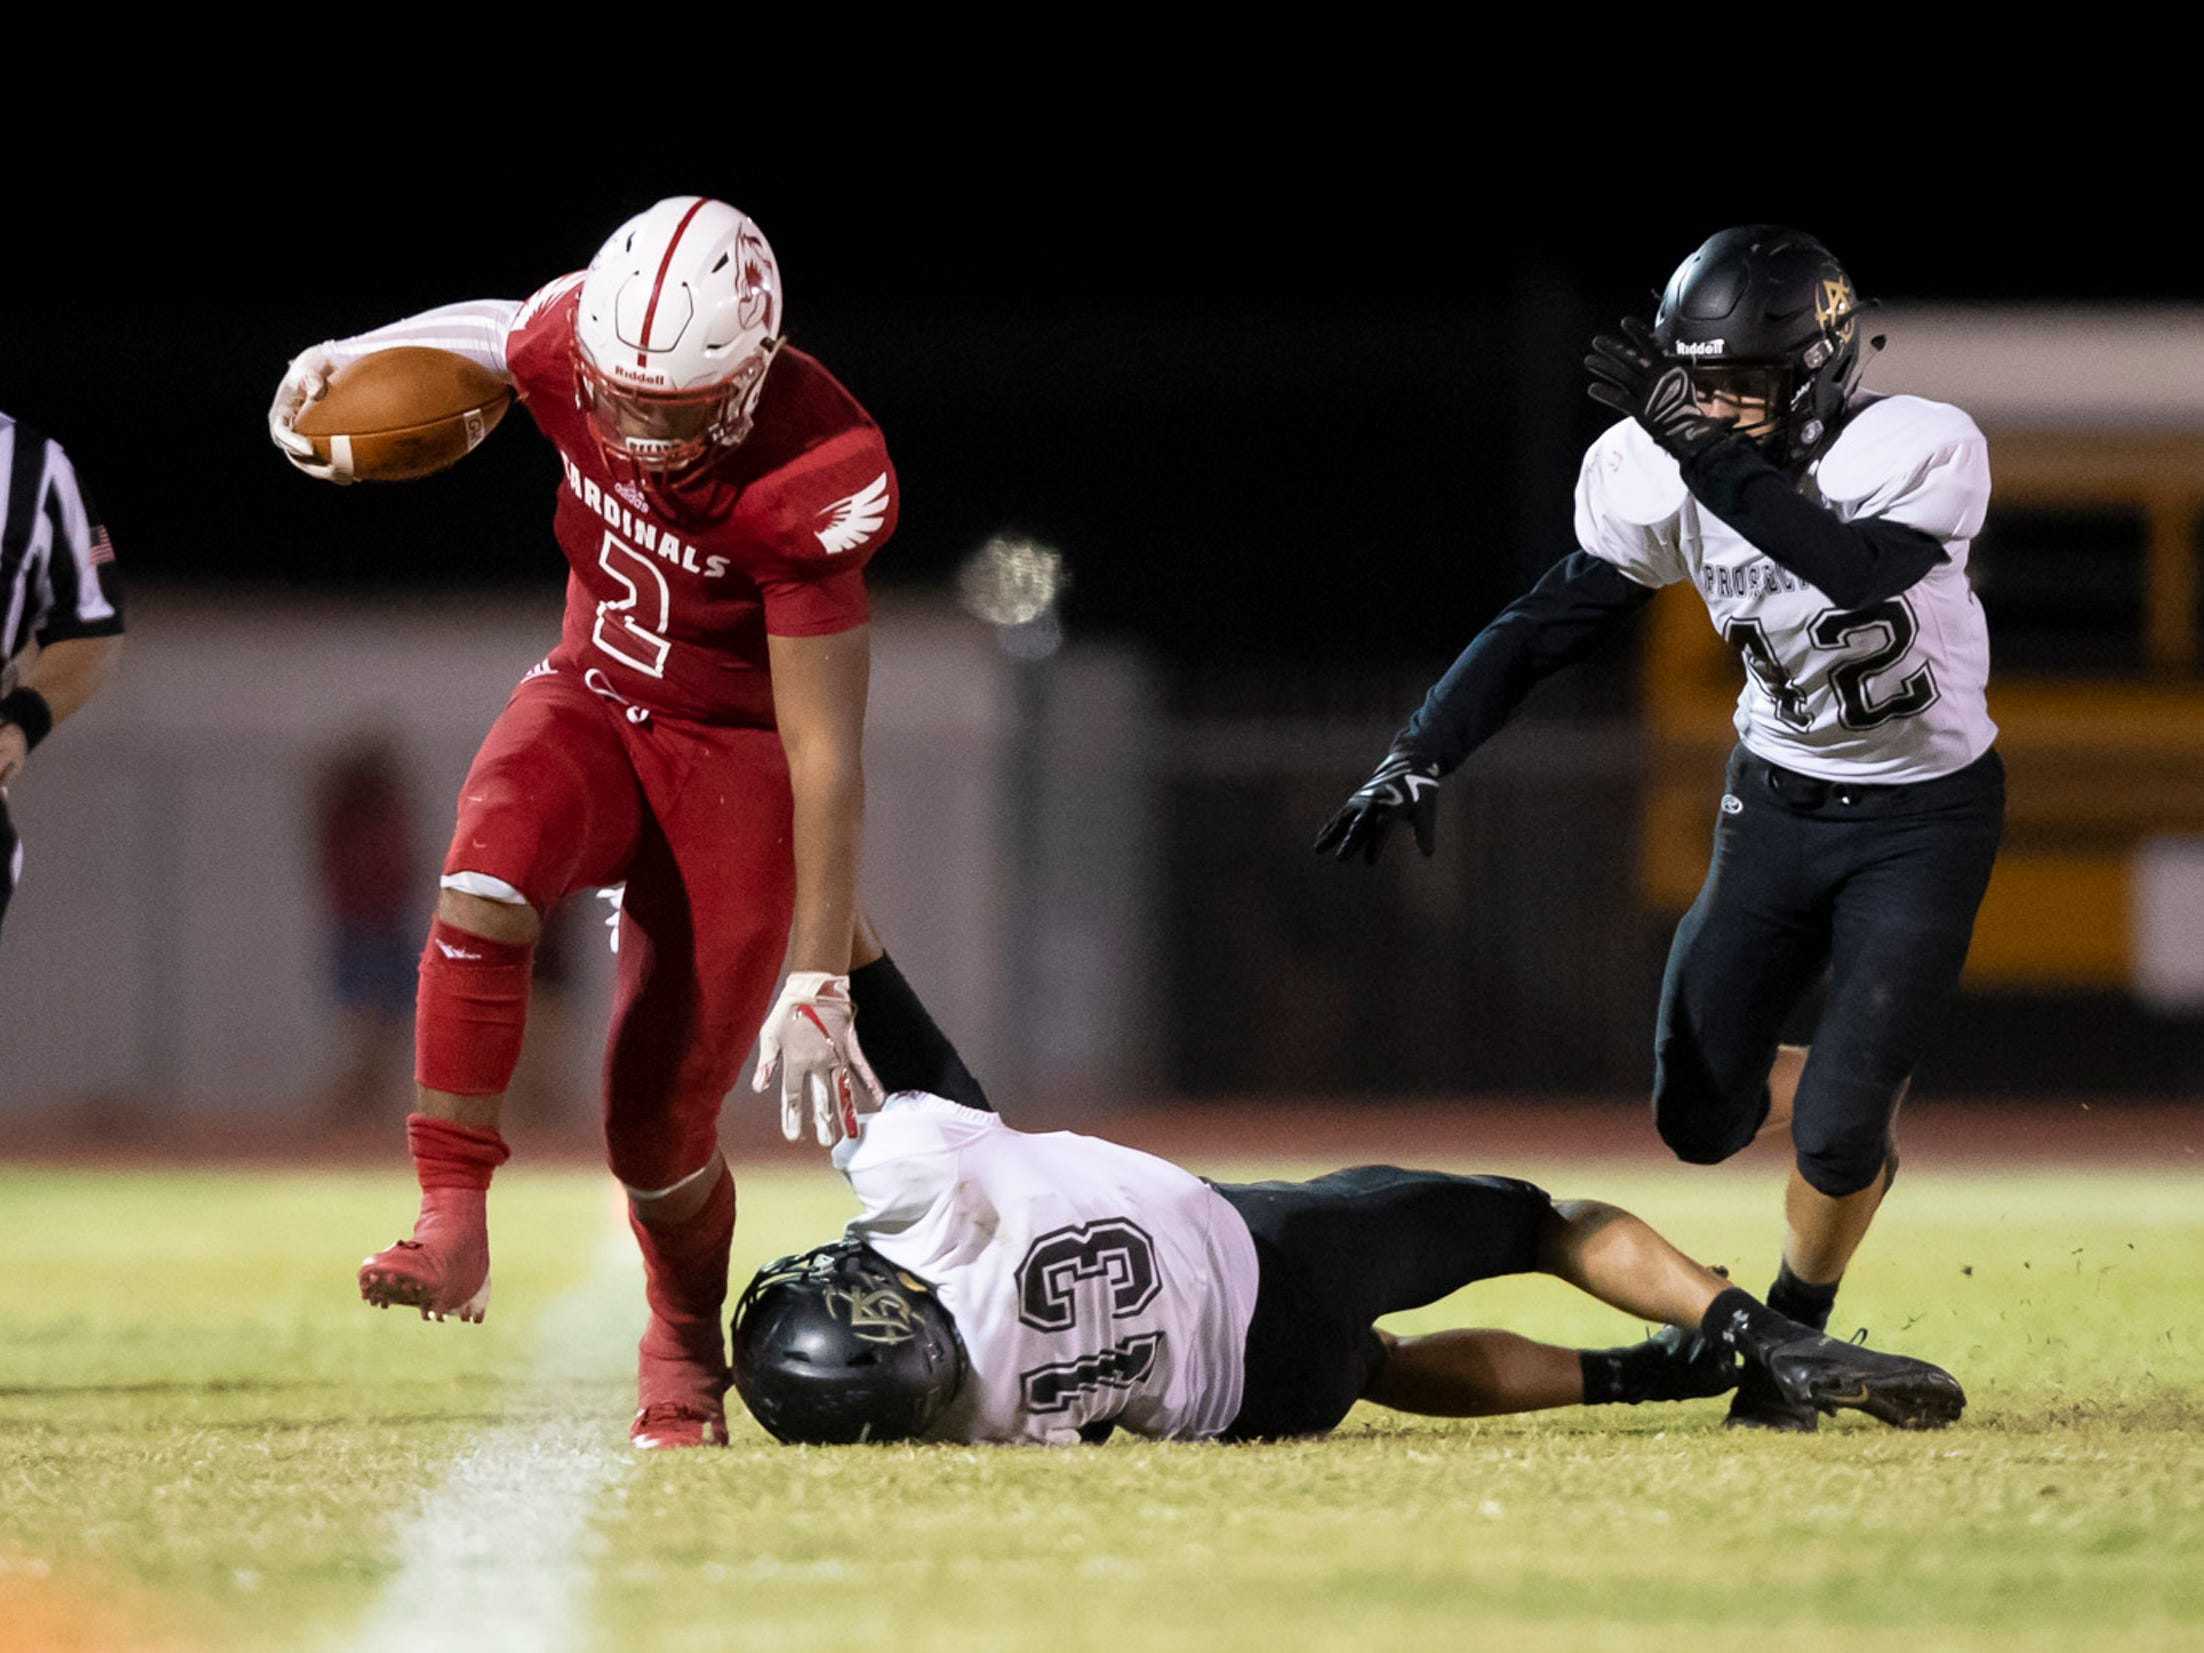 Junior running back Kevin Daniels (2) of the Glendale Cardinals is brought down out of bounds by junior linebacker Talon Izbicki (13) of the Apache Junction Prospectors at Glendale High School on Friday, October 19, 2018 in Glendale, Arizona. #azhsfb